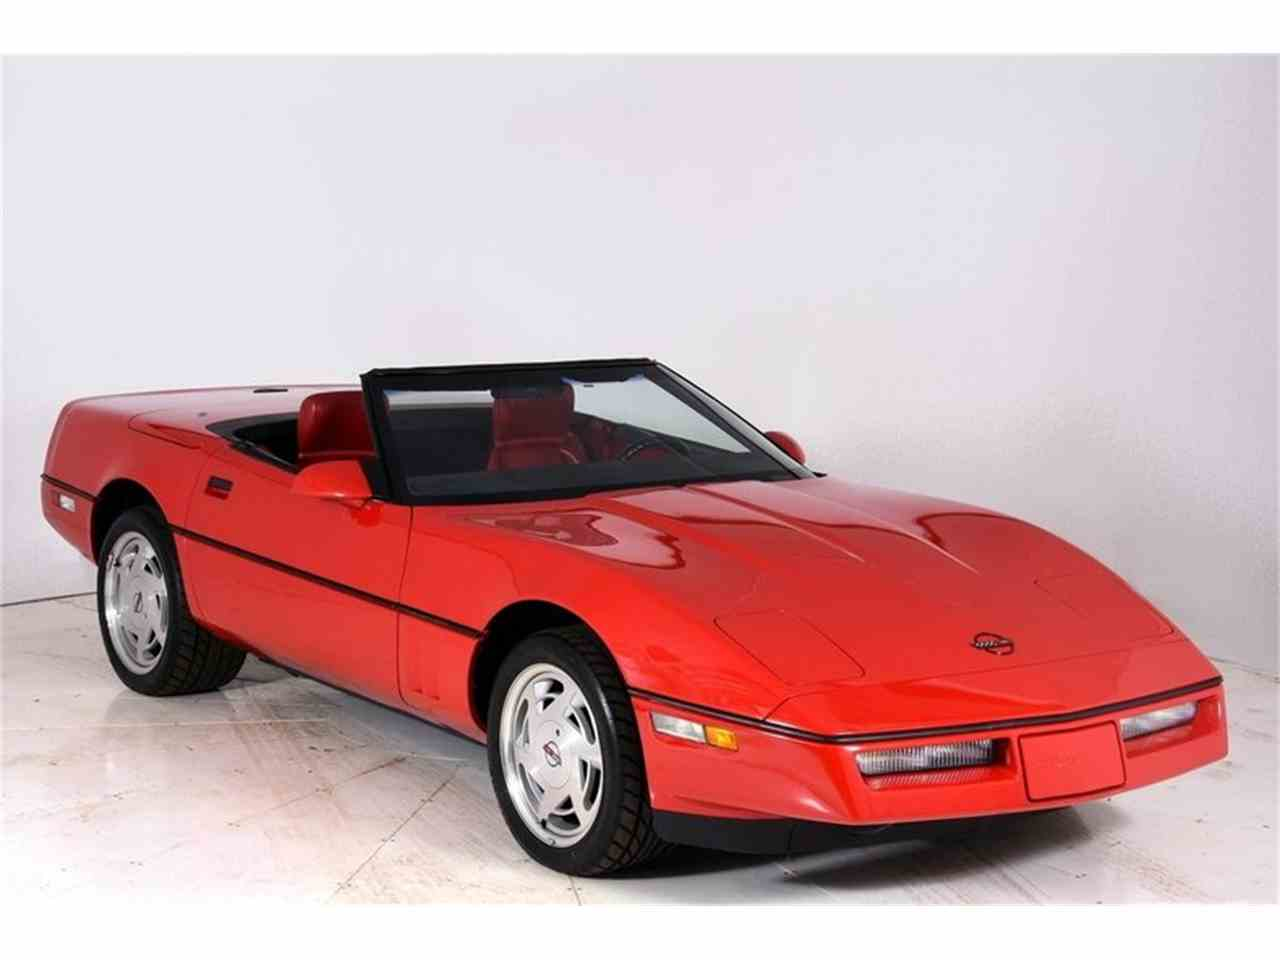 Large Picture of '89 Chevrolet Corvette located in Illinois - $17,998.00 - MDVF